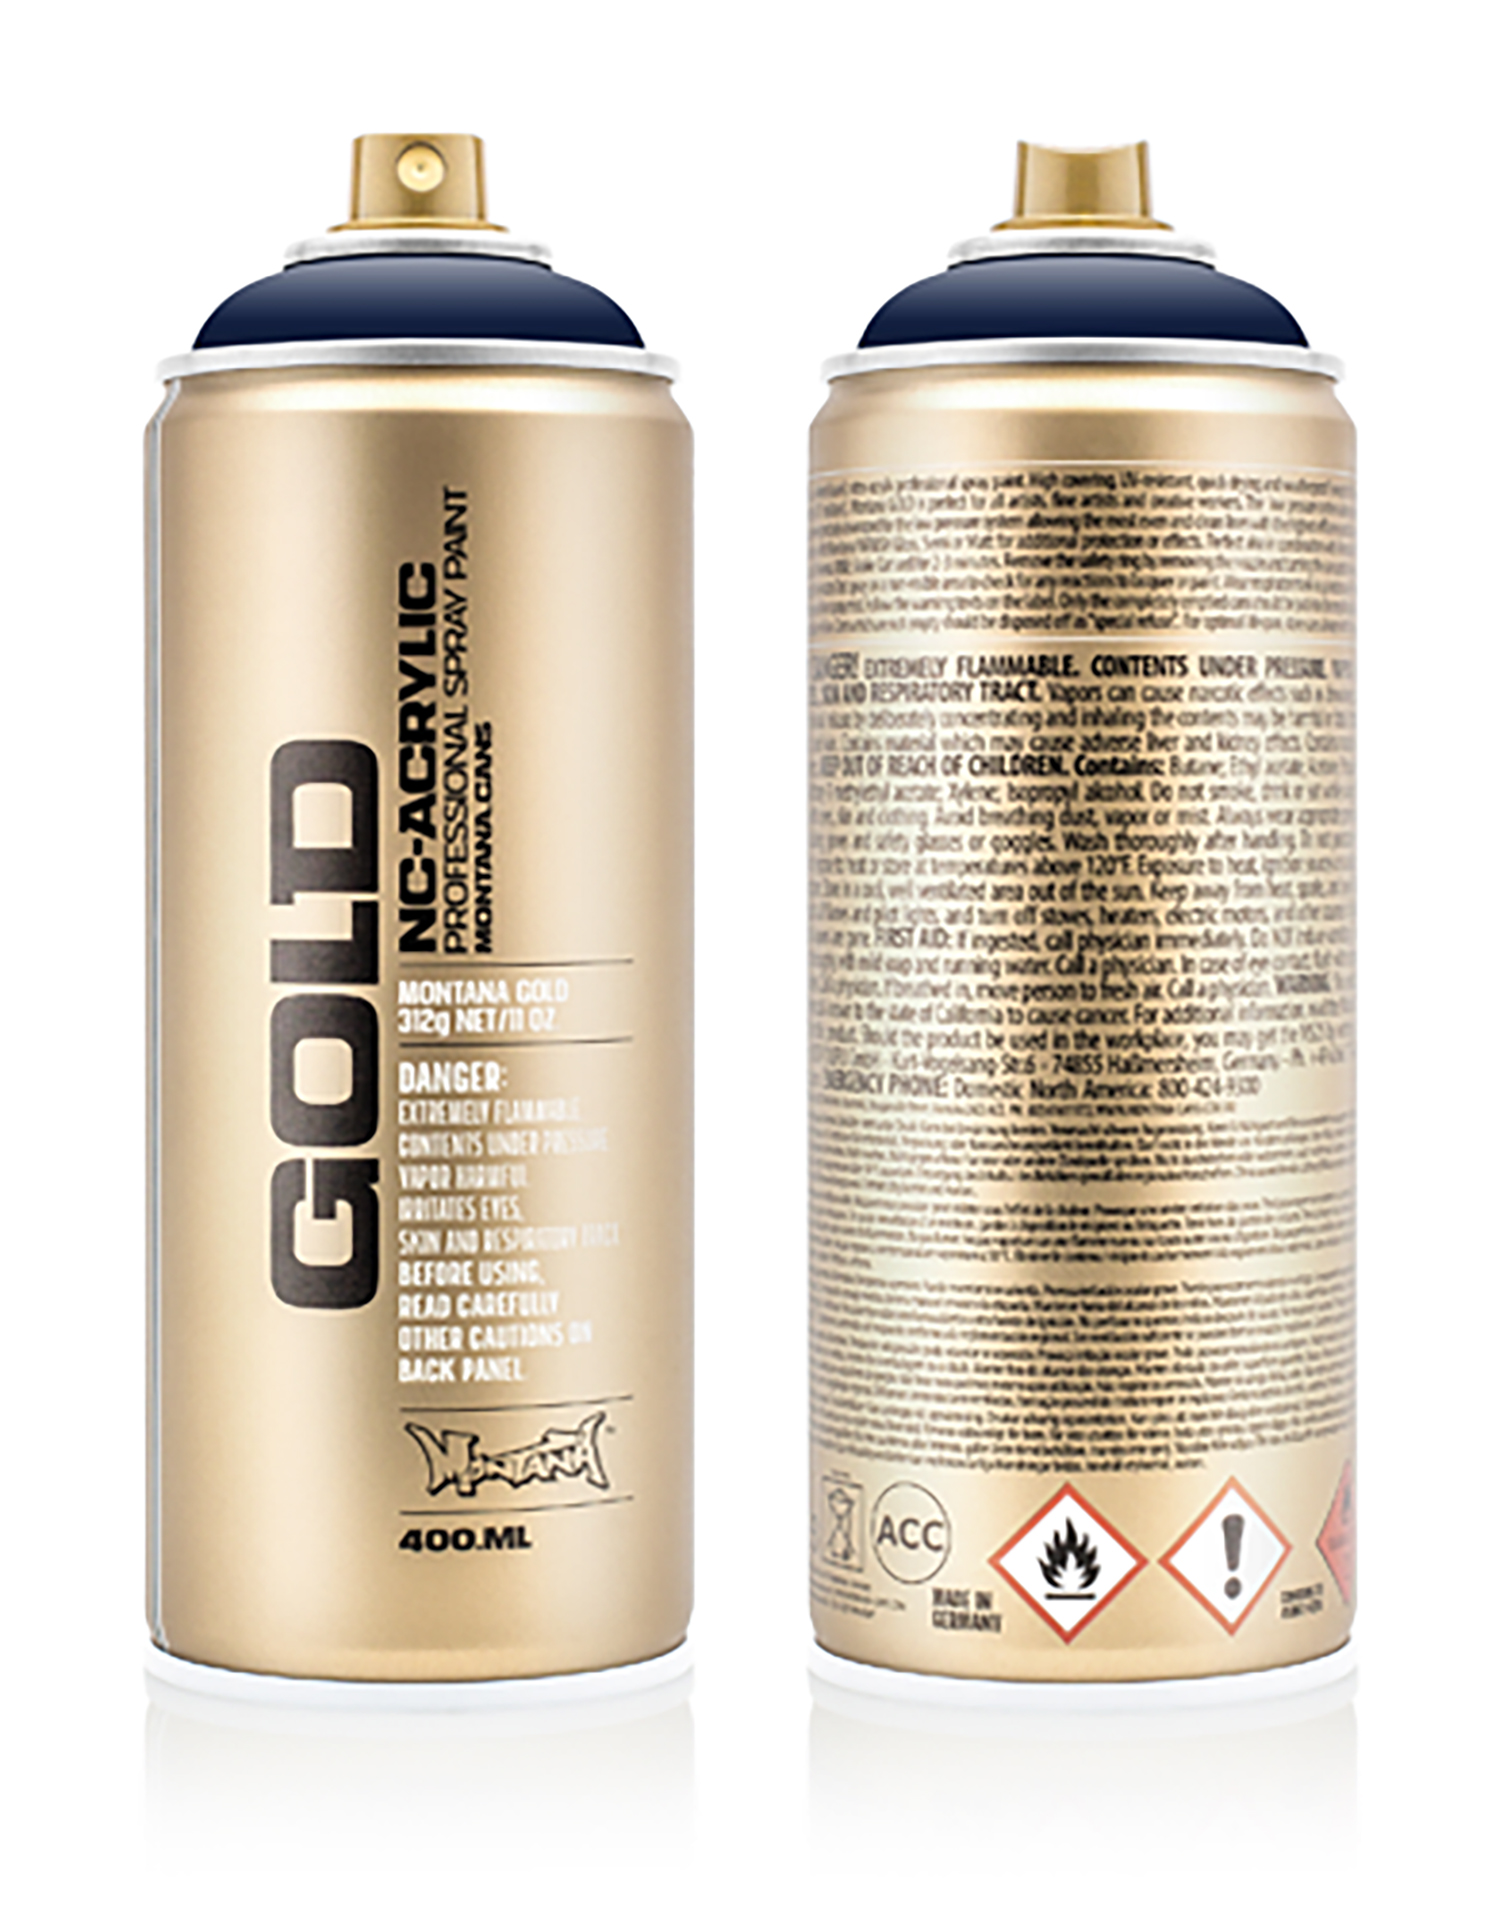 MONTANA-GOLD-SPRAY-400ML-G-4180